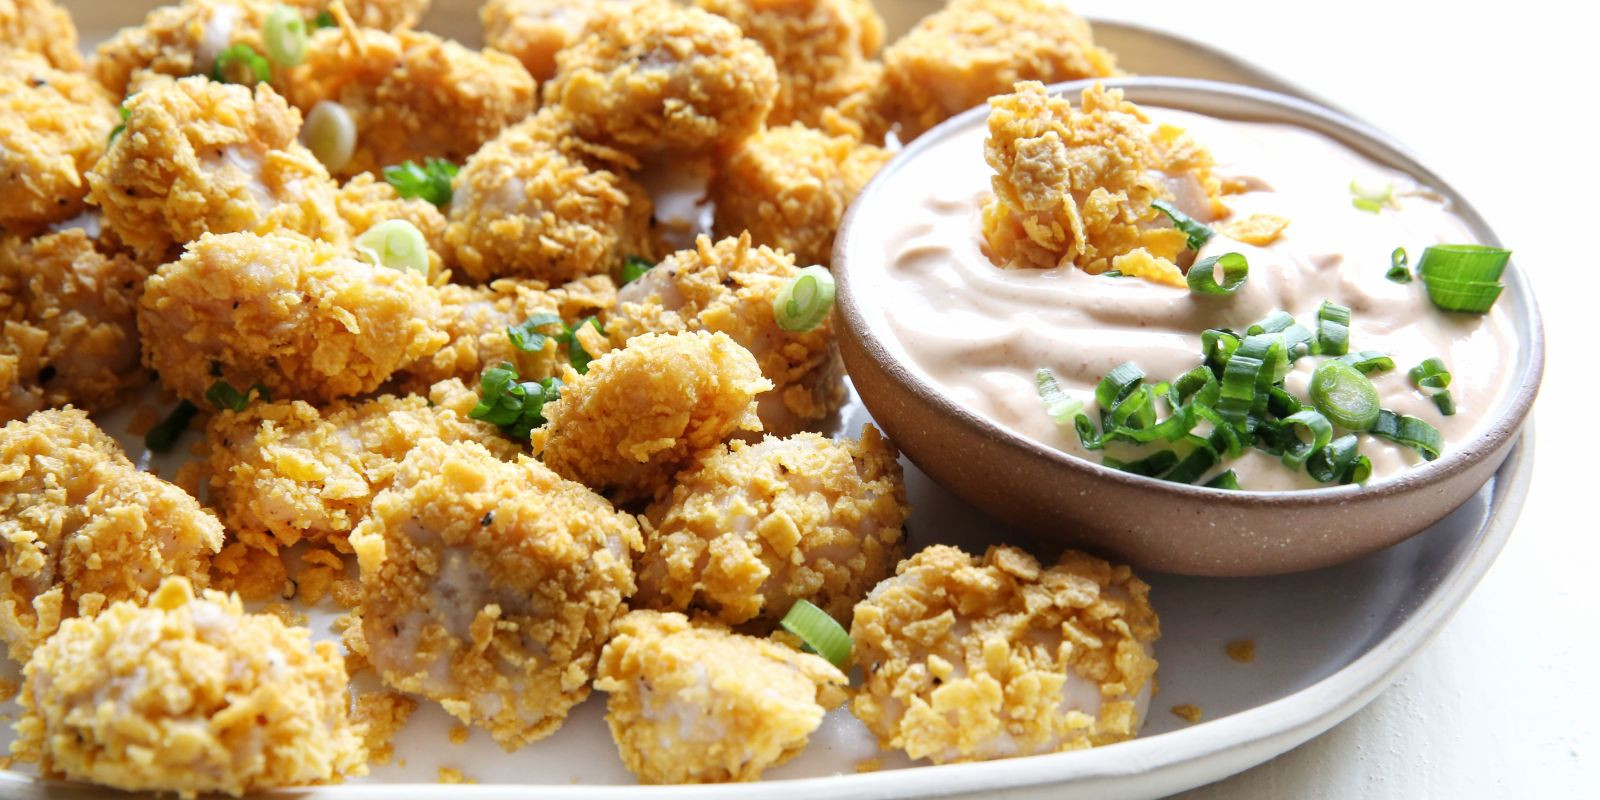 Chicken Recipes For Kids  12 Easy Chicken Recipes For Kids Best Kid Friendly